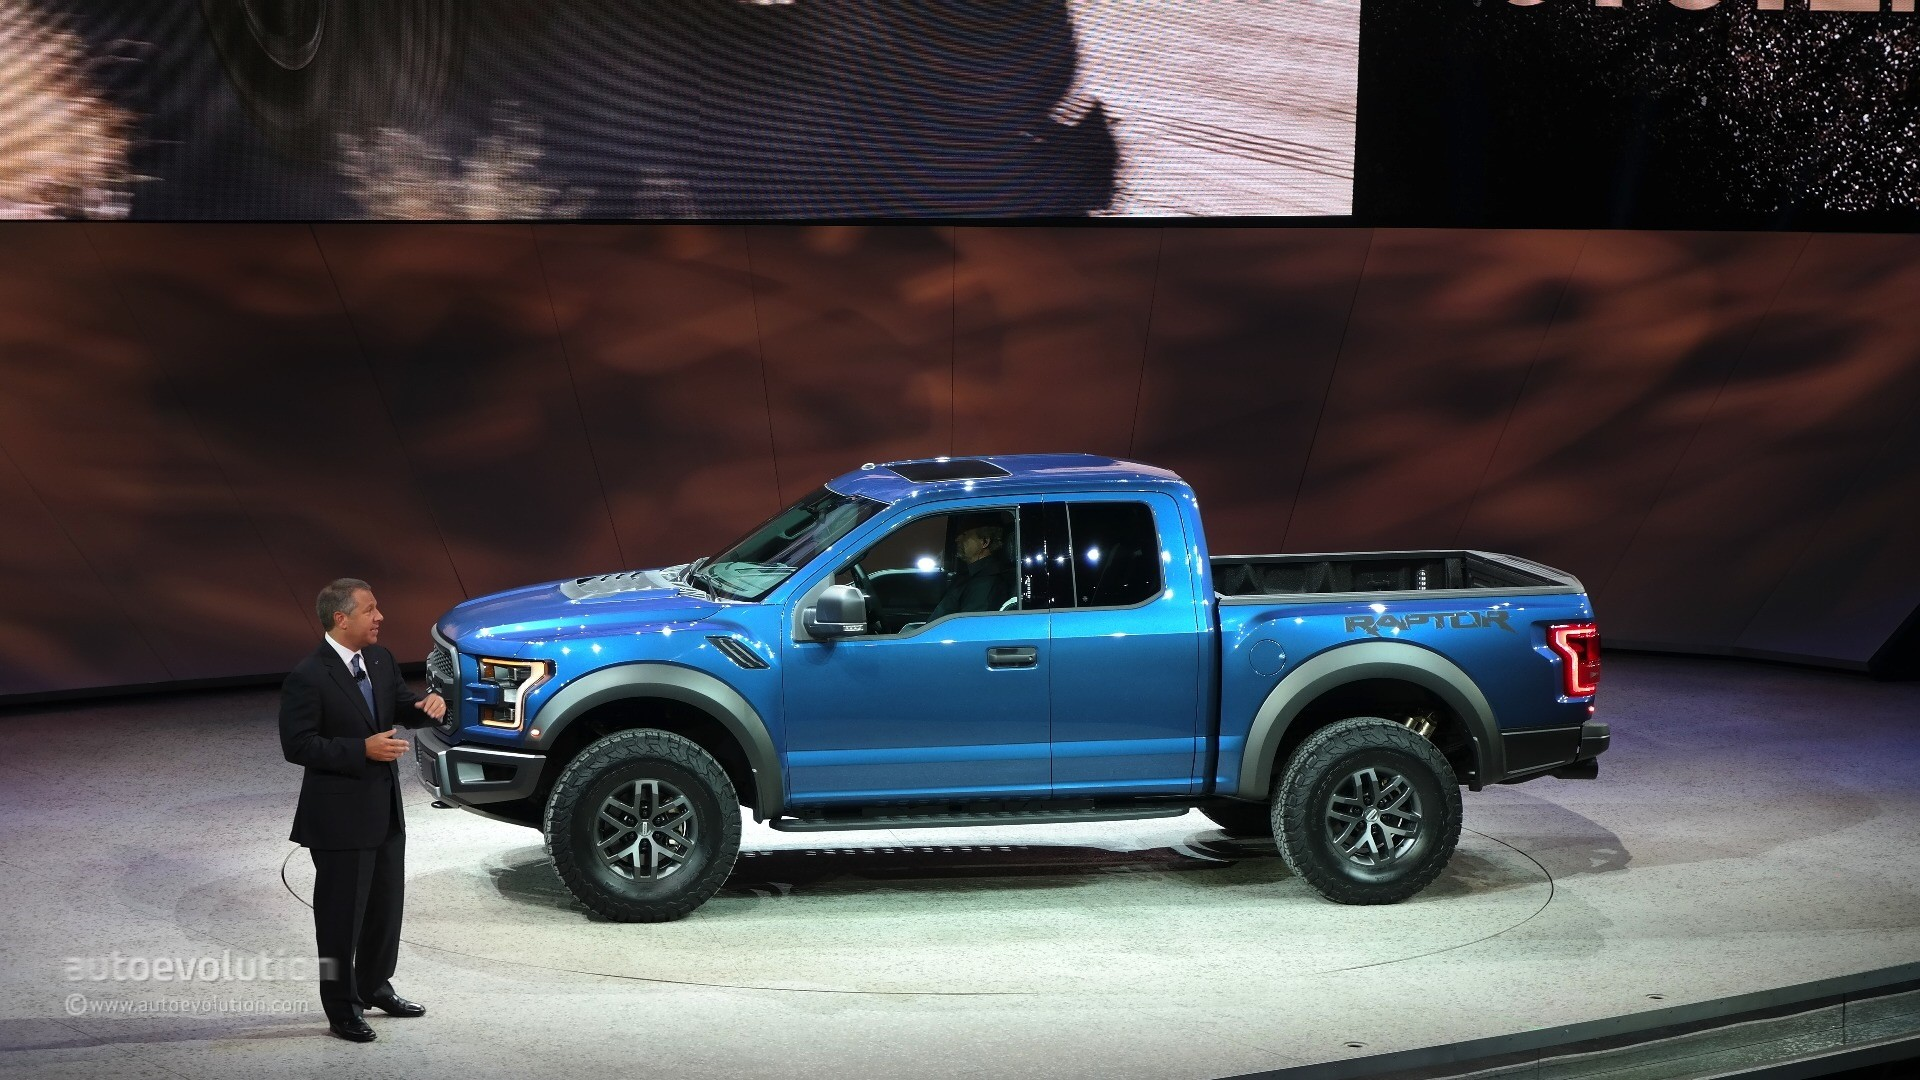 2017 Ford F-150 Raptor Debuts at Detroit, Feels More Practical [Live Photos] - autoevolution